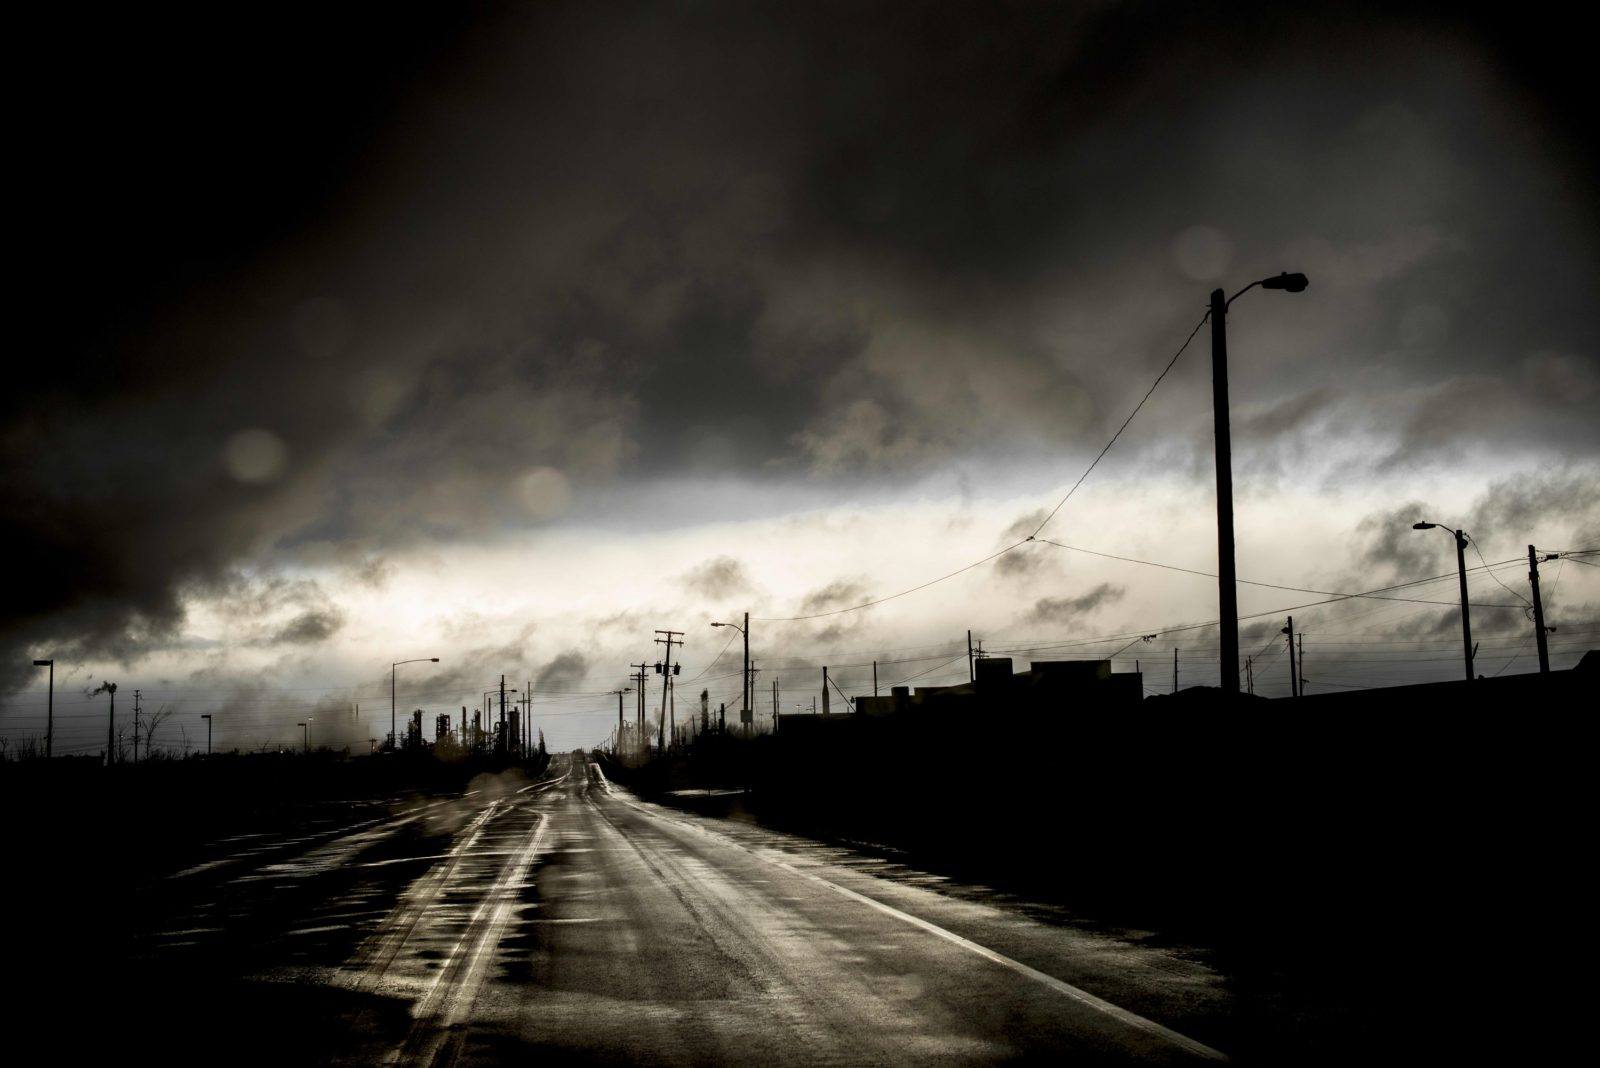 Todd-Hido-Untitled2c-Bright-Black-World2c-2014-Courtesy-Reflex-Gallery-Amsterdam